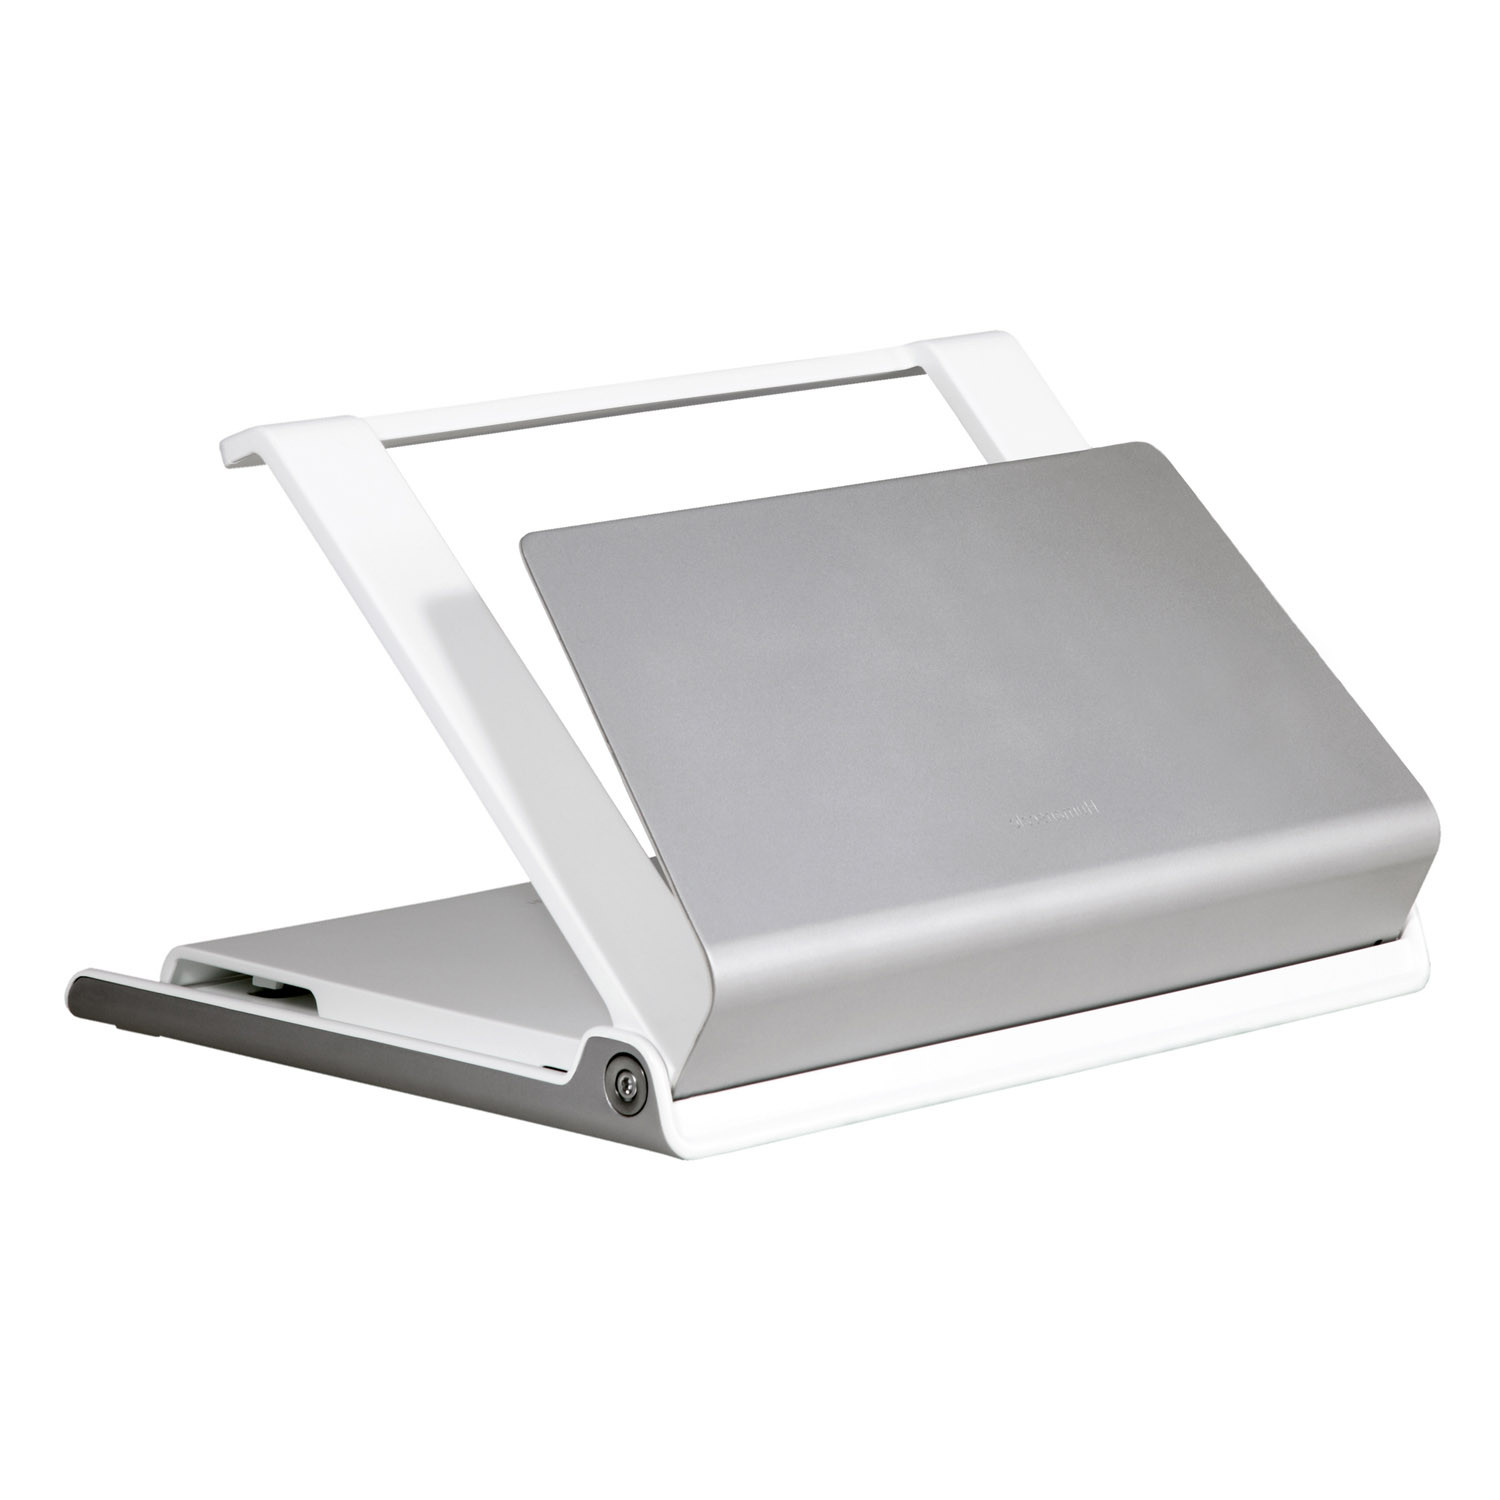 L6 Laptop Stand by Humanscale